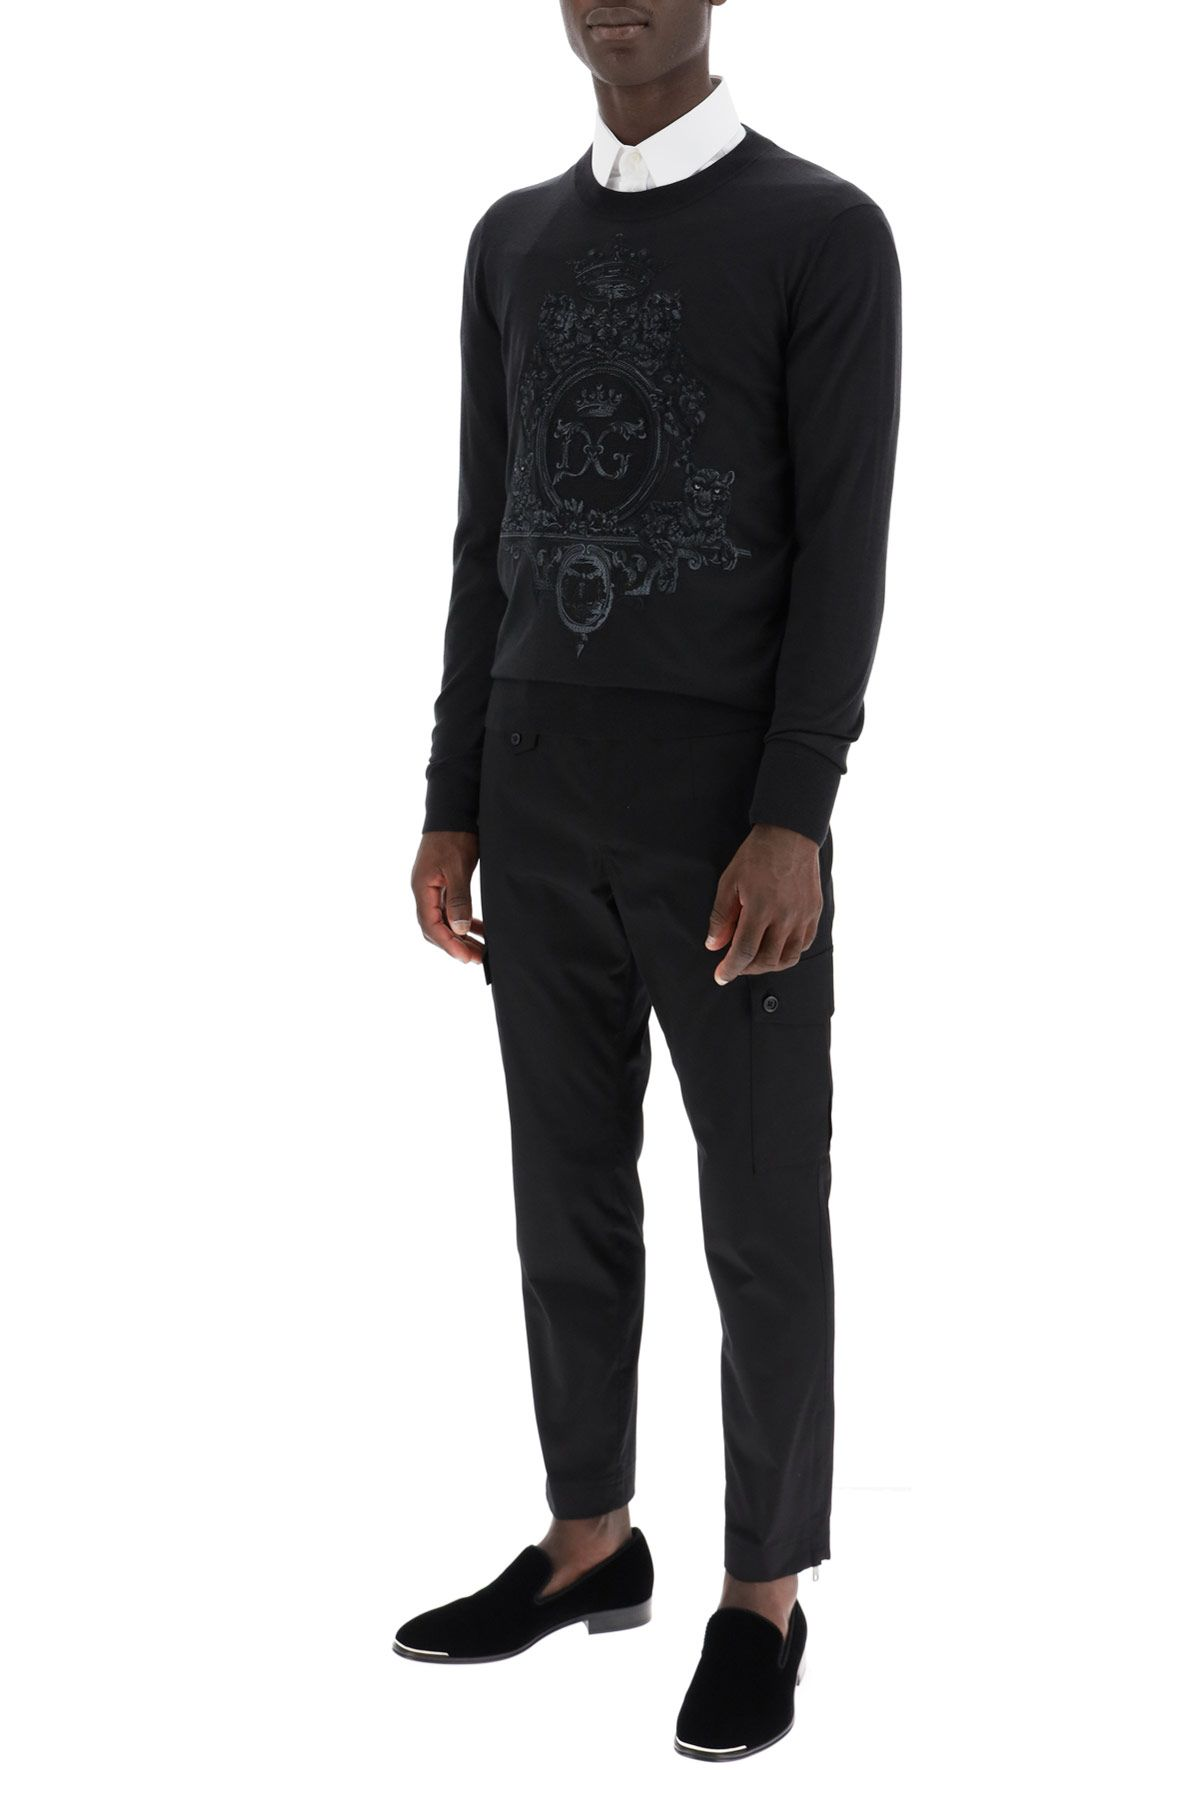 dolce & gabbana clothing men wool sweater with heraldic embroidery